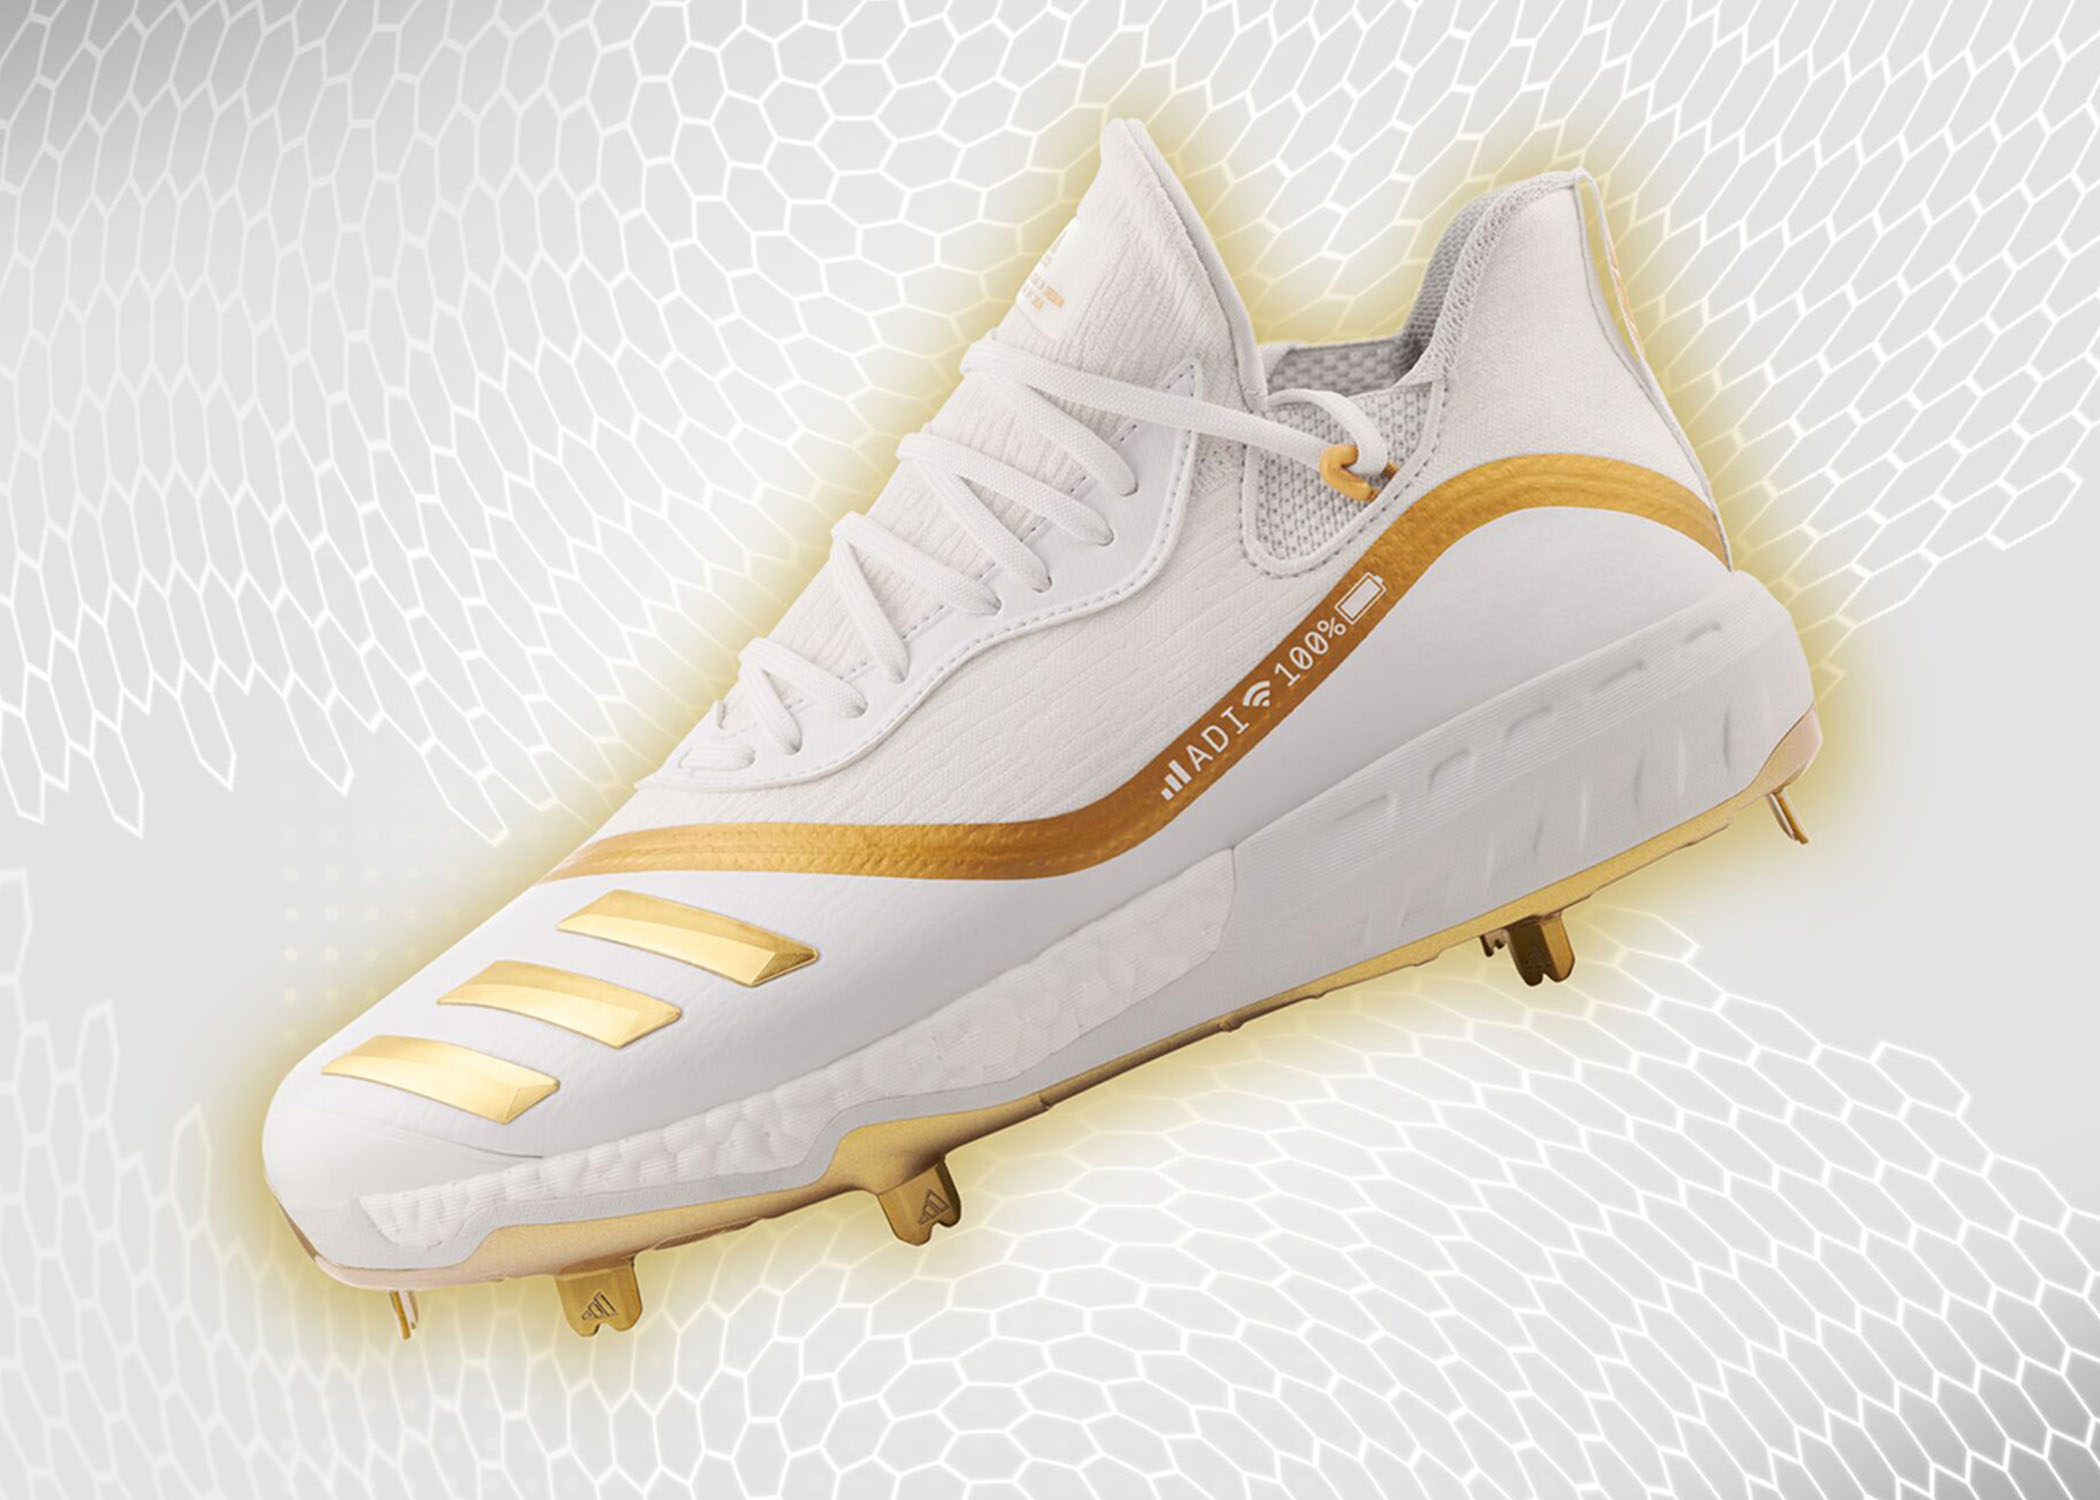 Adizero afterburner_2